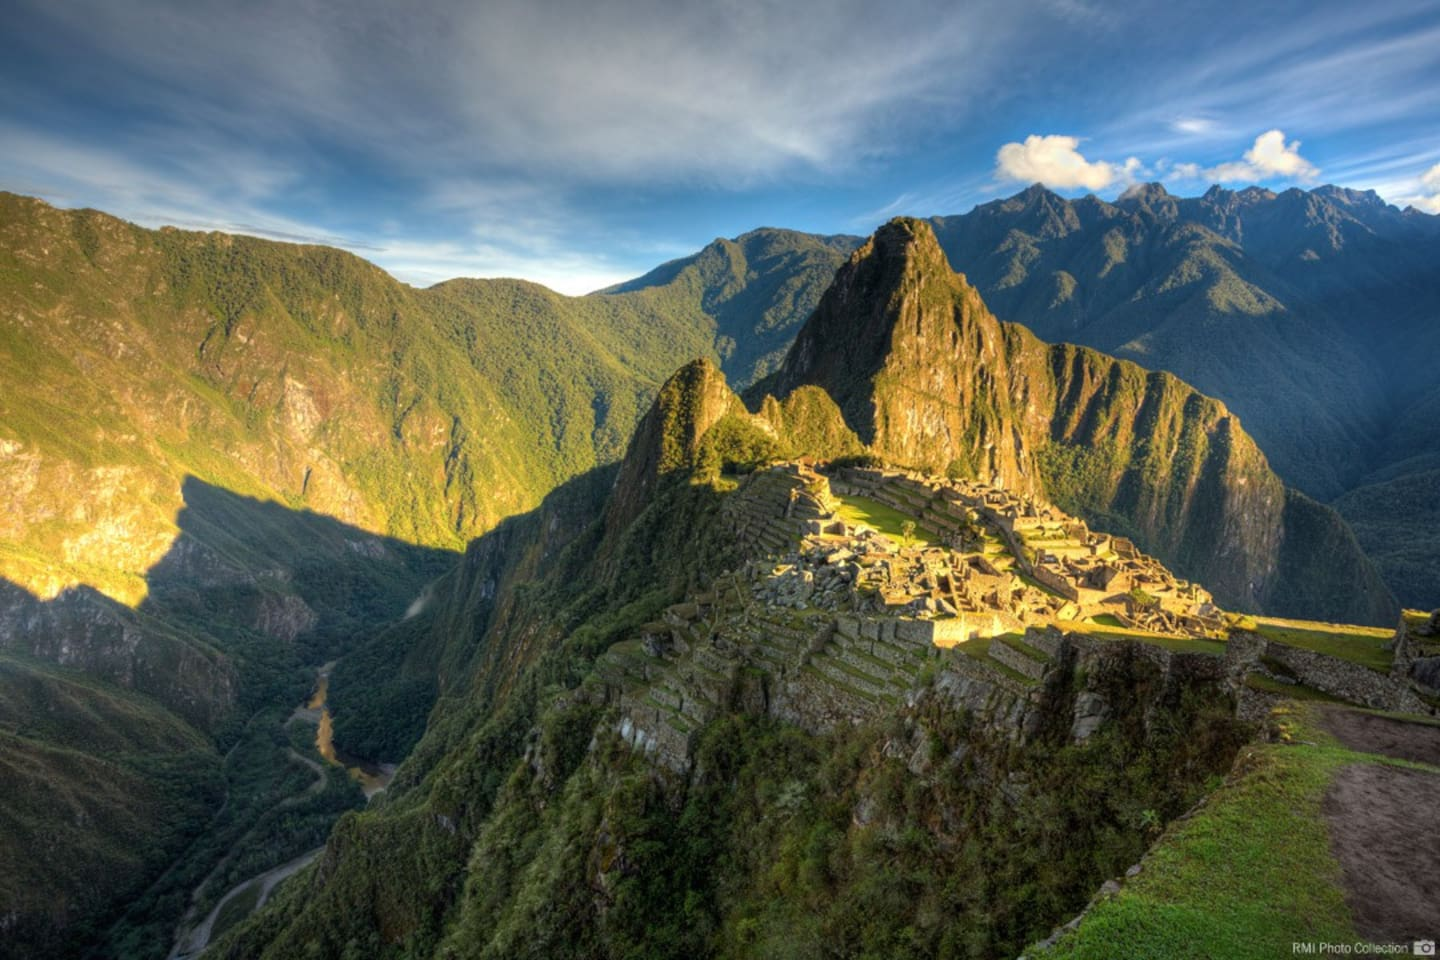 SUNRISE AT MACHUPICCHU